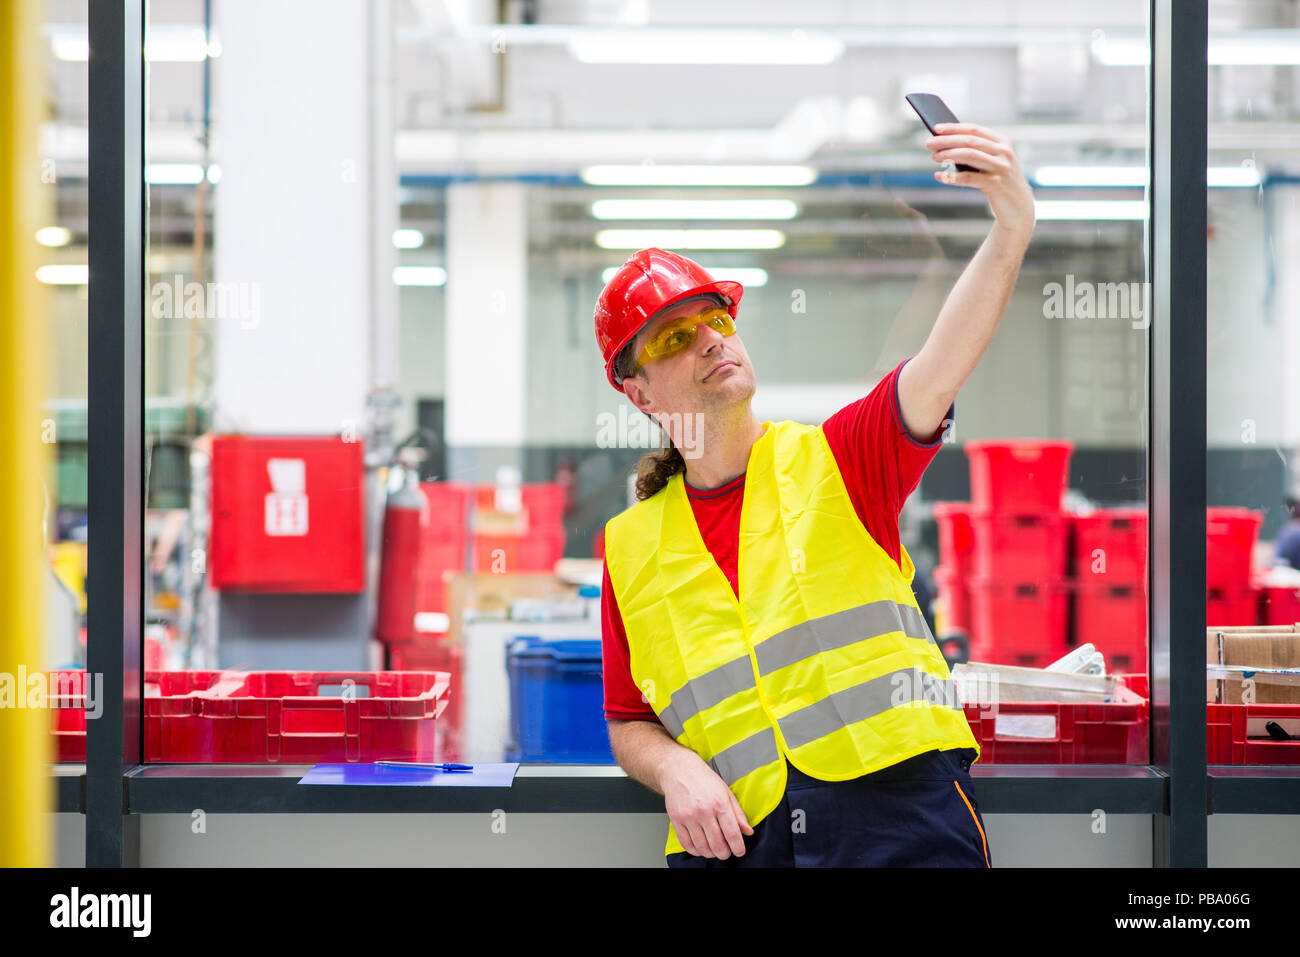 Factory worker taking selfie with his mobile phone inside the factory - Stock Image